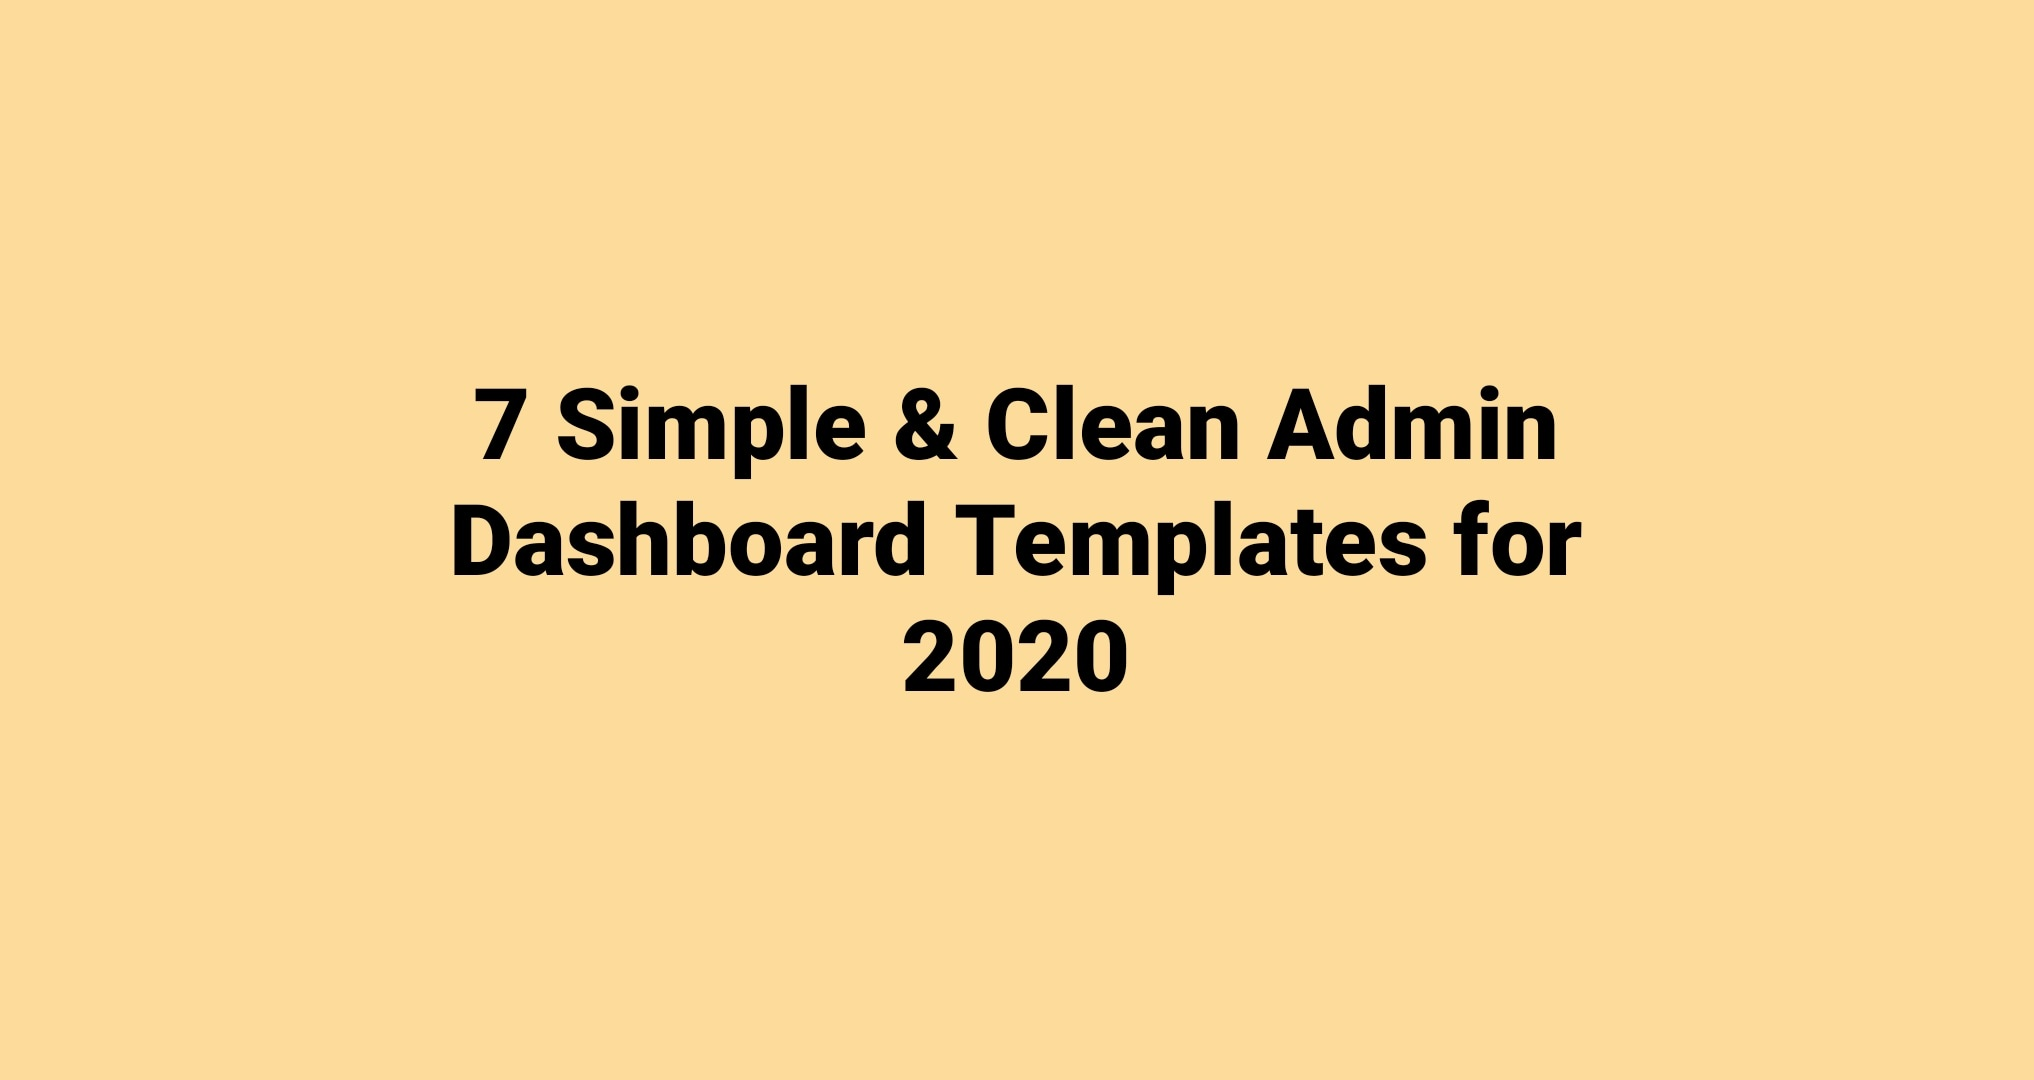 7 Simple & Clean Admin Dashboards You Ever Need To Build Professional Back-end in 2020  7 Simple & Clean Admin Dashboards You Ever Need To Build Professional Back-end in 2020 IMG 20200514 170420 180  01